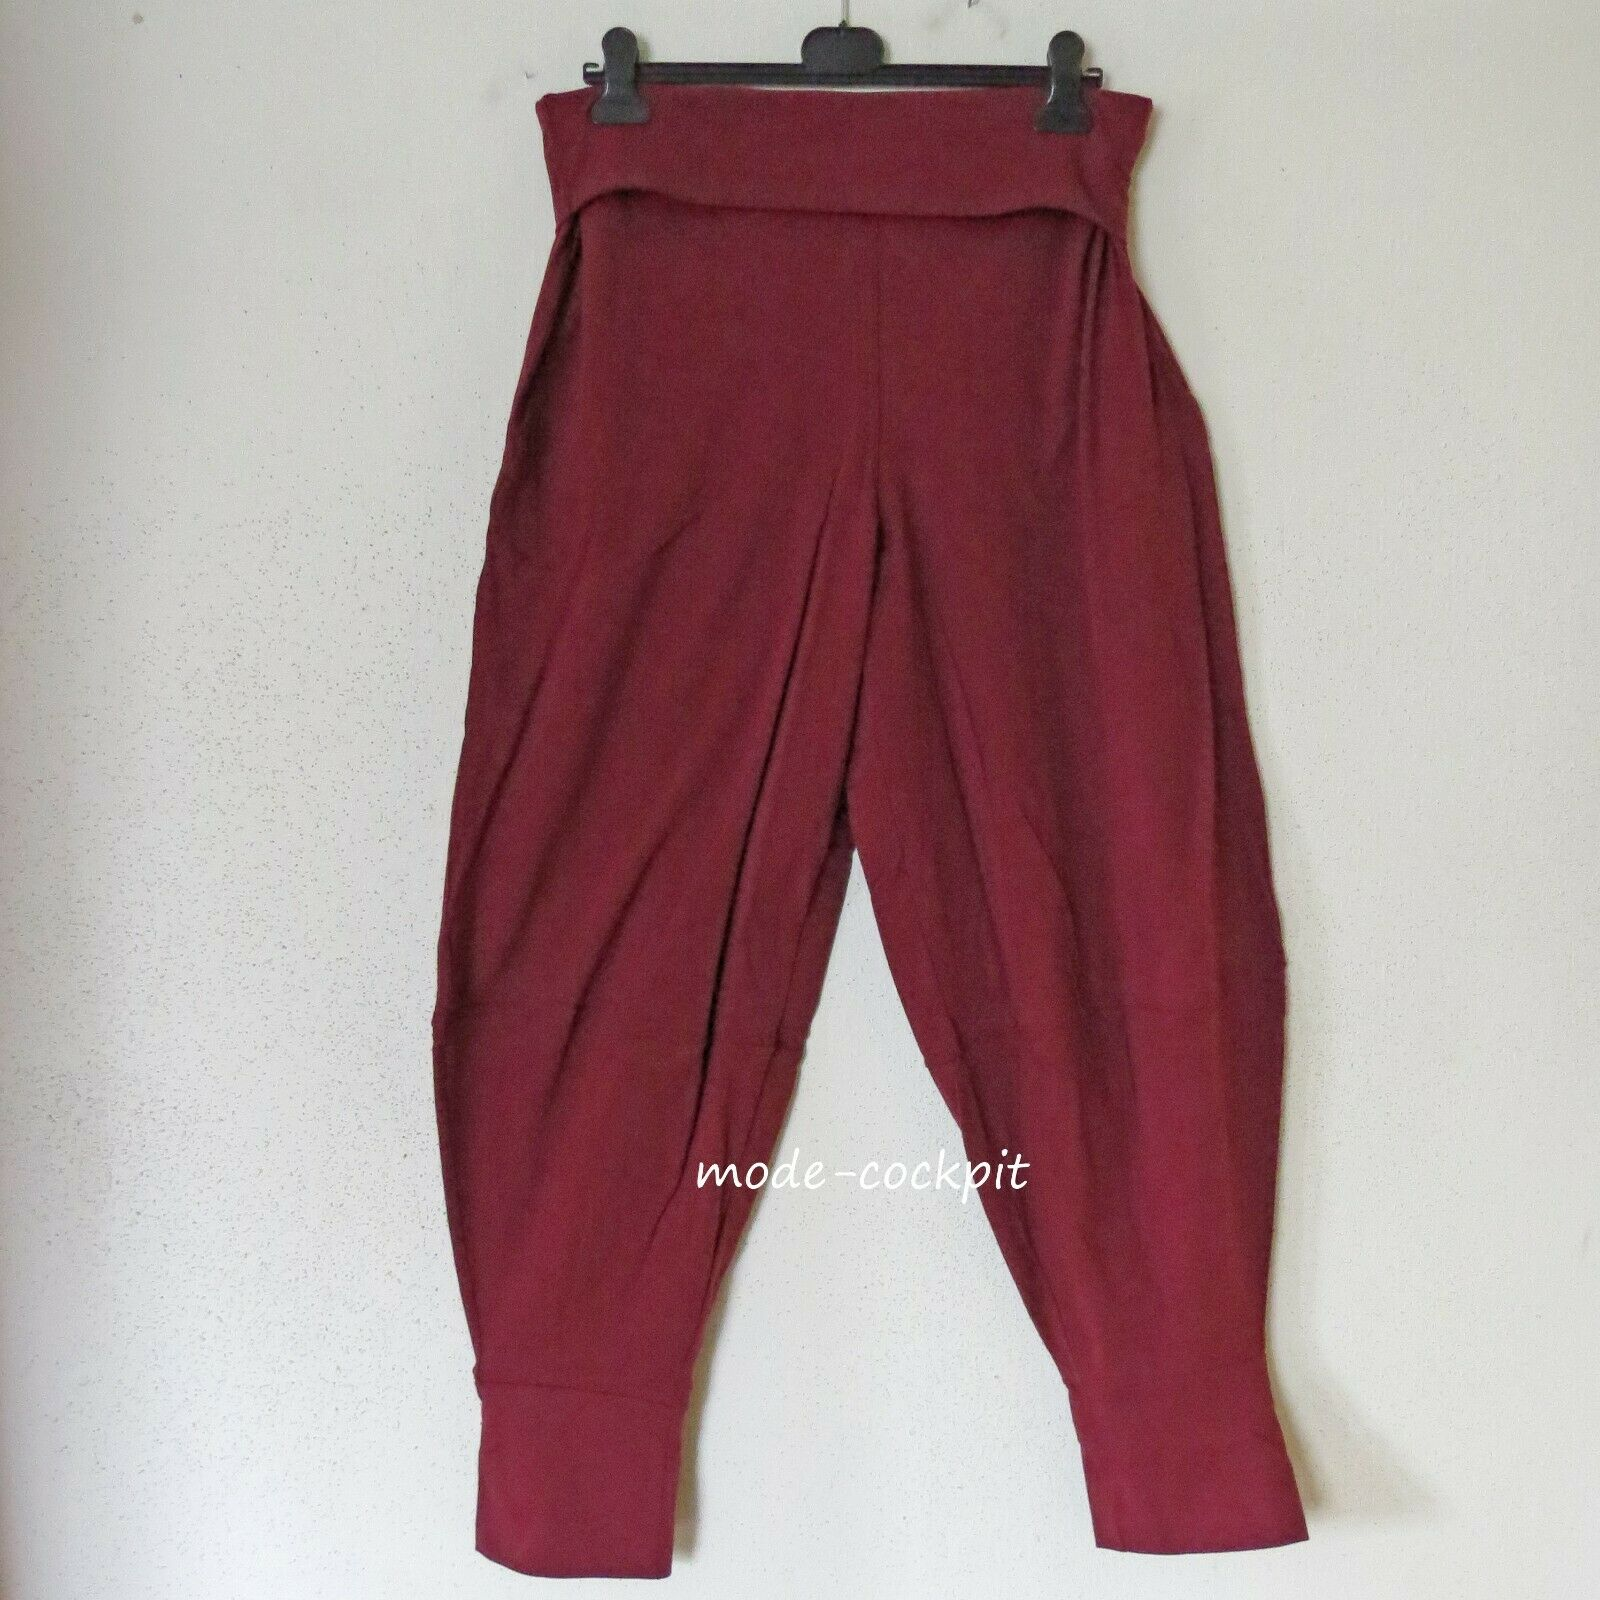 BORIS INDUSTRIES süsse Ballon Hose Lagenlook Baumwolle bordeaux 46 (4)